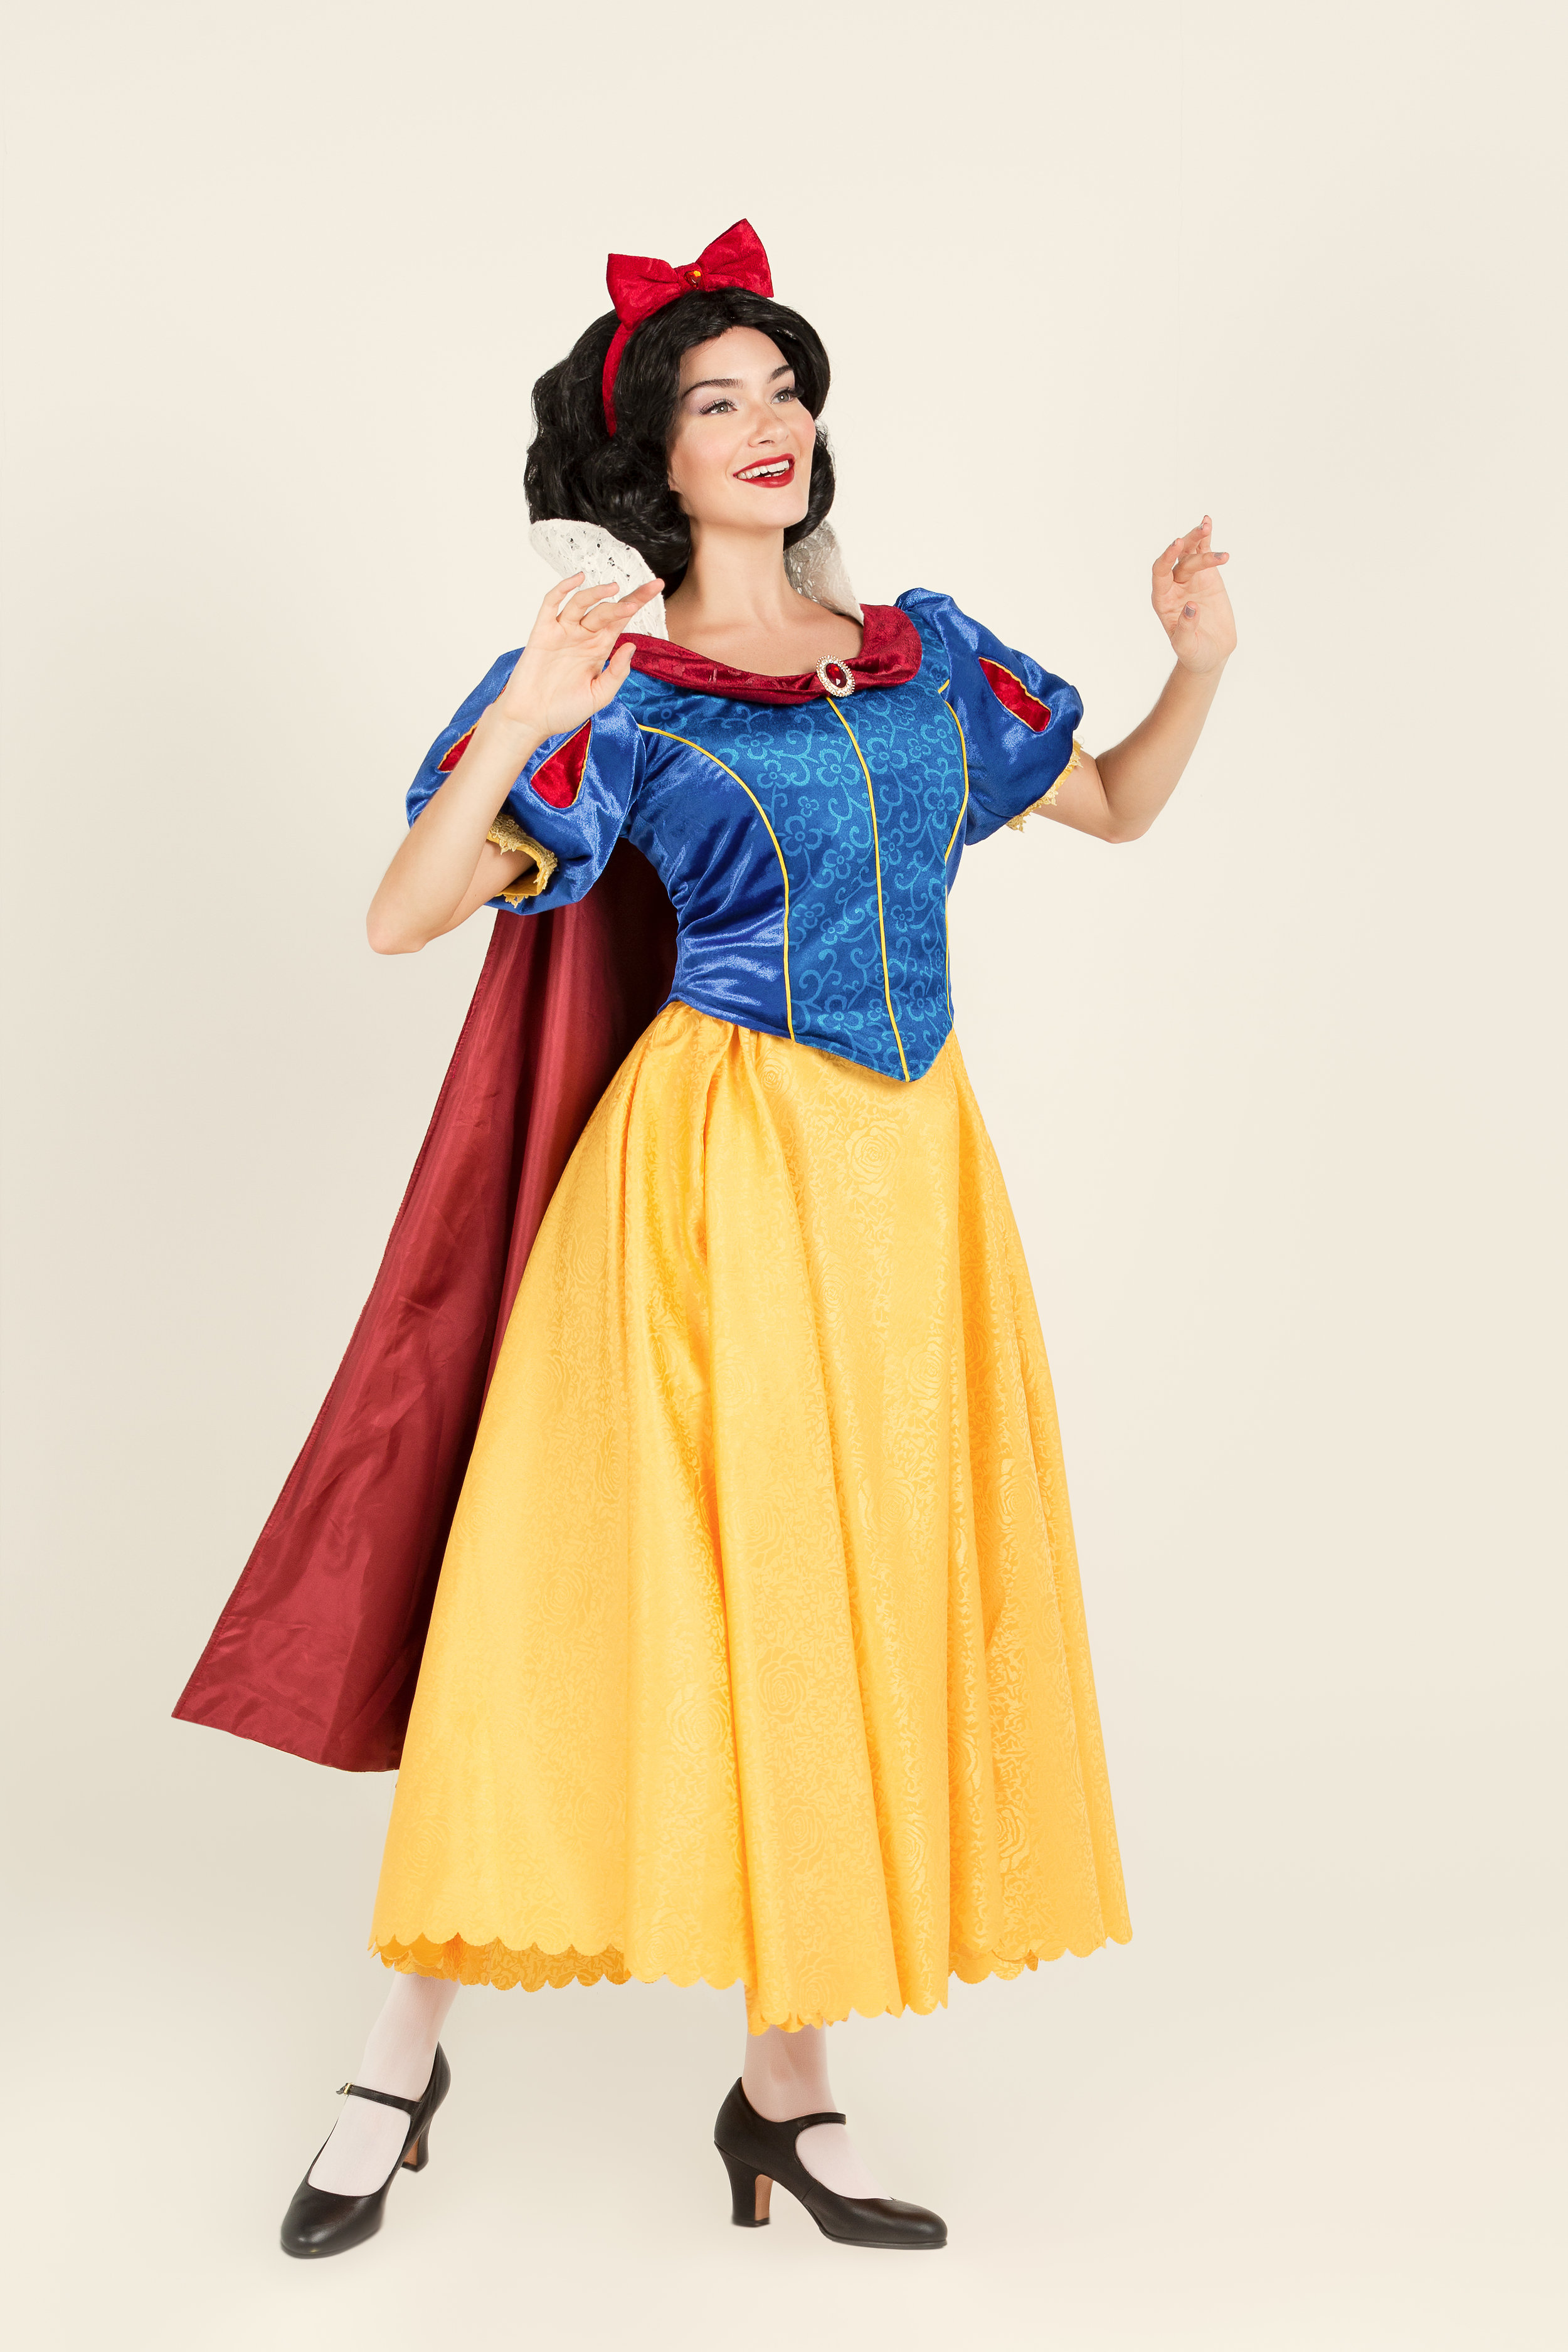 Snow White   Snow White makes everyone smile and would love to surprise your little one. She whistles her tunes and loves to talk about her favourite friends, the seven dwarfs &  her handsome prince.